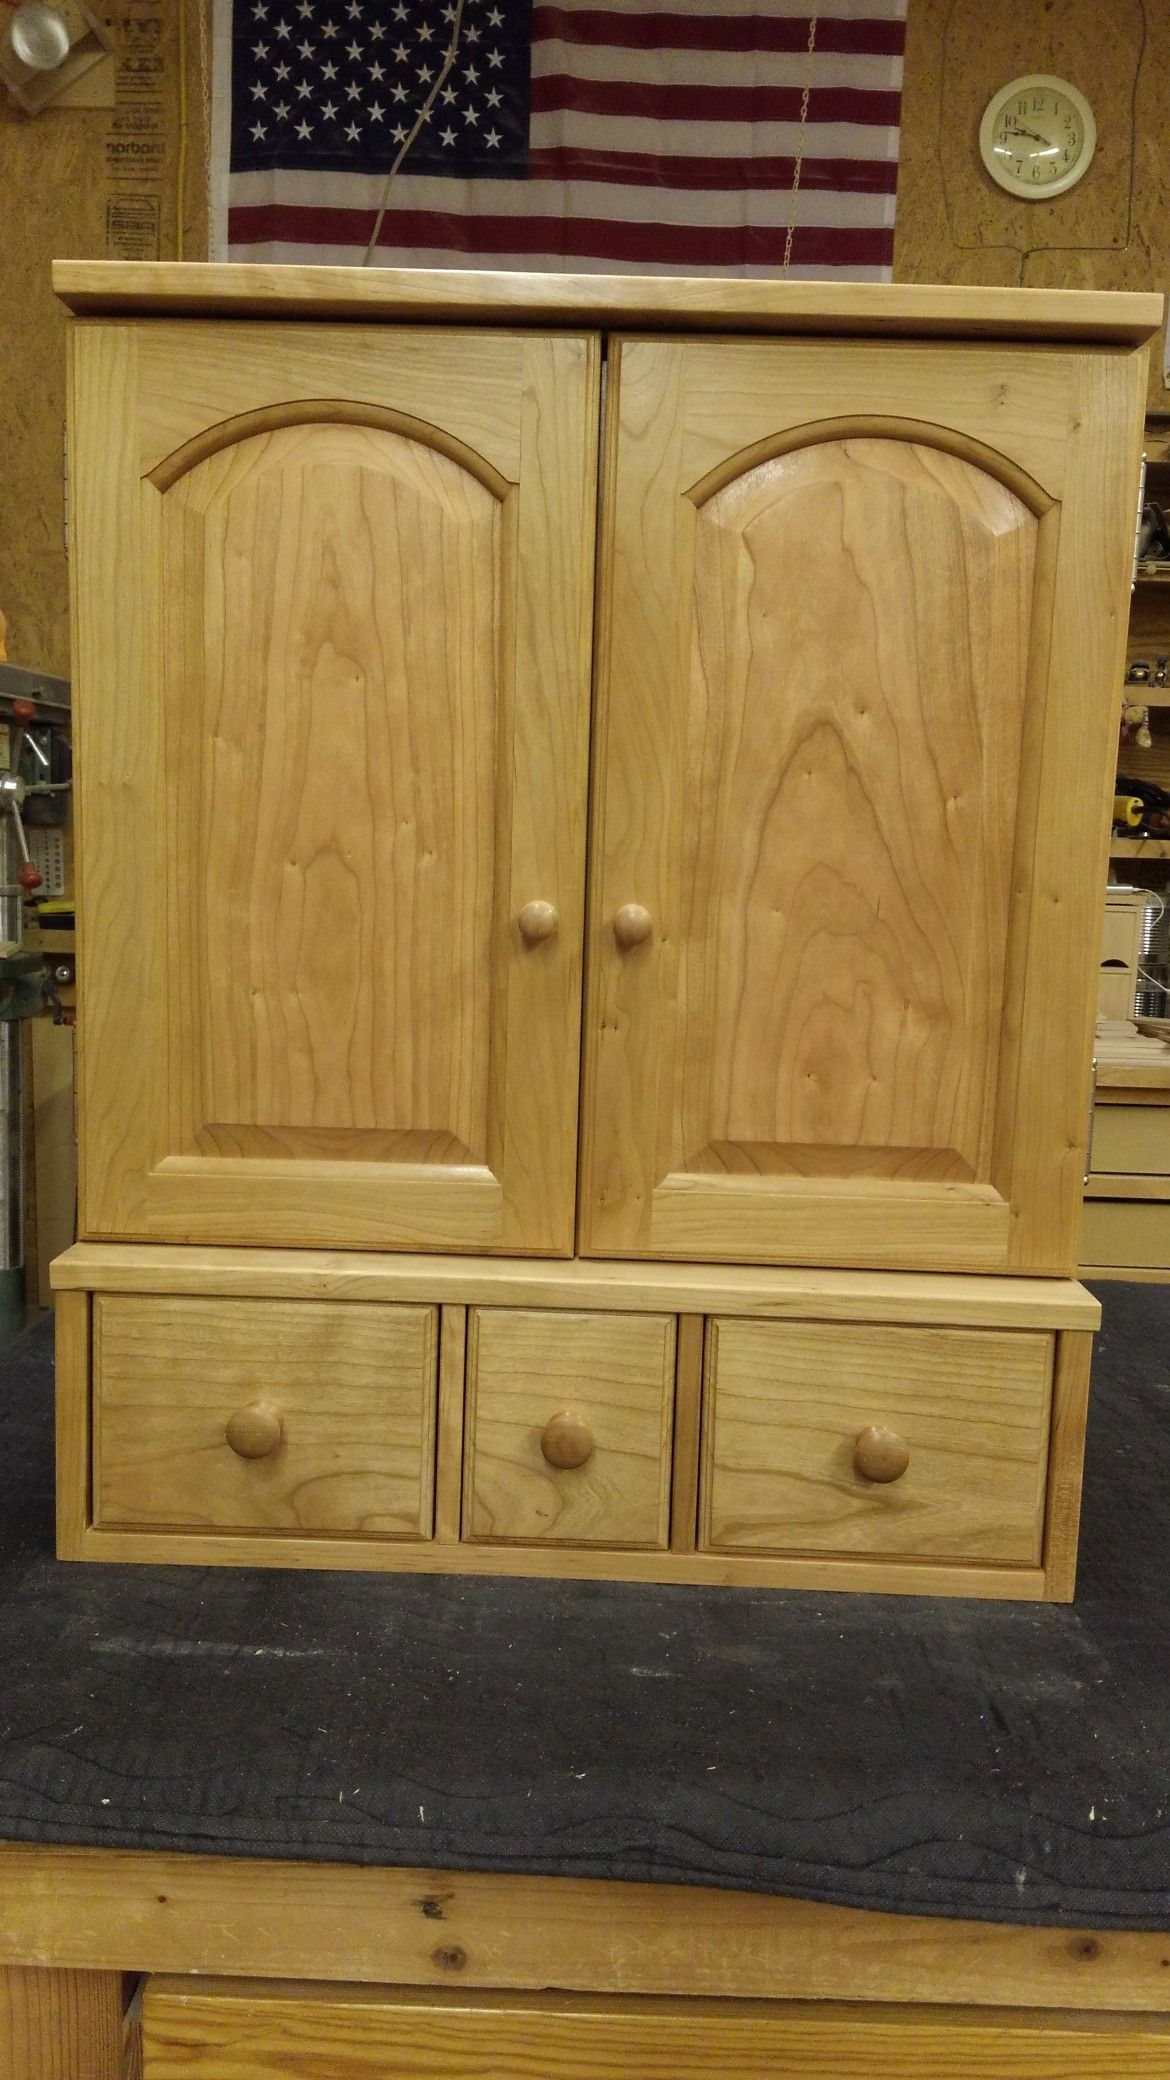 Custom Solid Cherry Wood Cabinet 30 Tall X 24 Wide X 14 Deep Intended For Loose Tea Storage In Pint Jars Cherry Wood Cabinets Tea Storage Adjustable Shelving Cherry wood storage cabinet